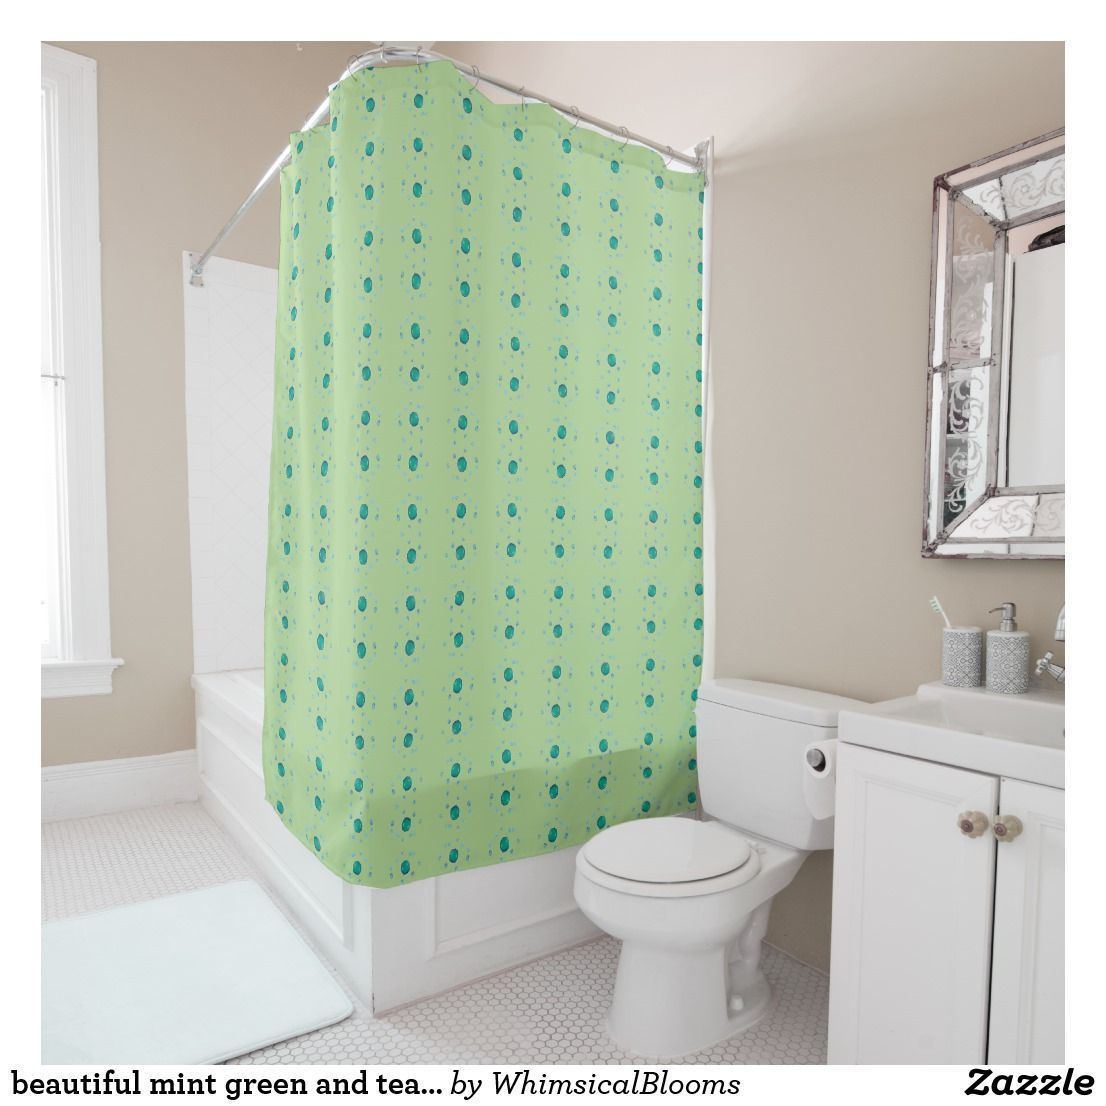 Beautiful mint green and teal pattern shower curtain in bath